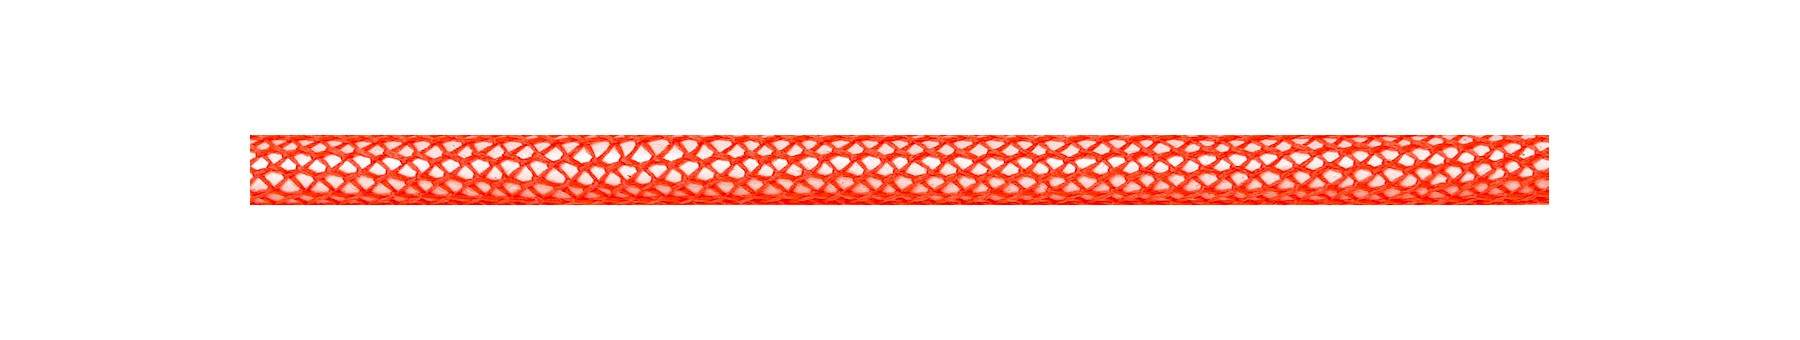 Textile Cable Neon Orange Netlike Covering